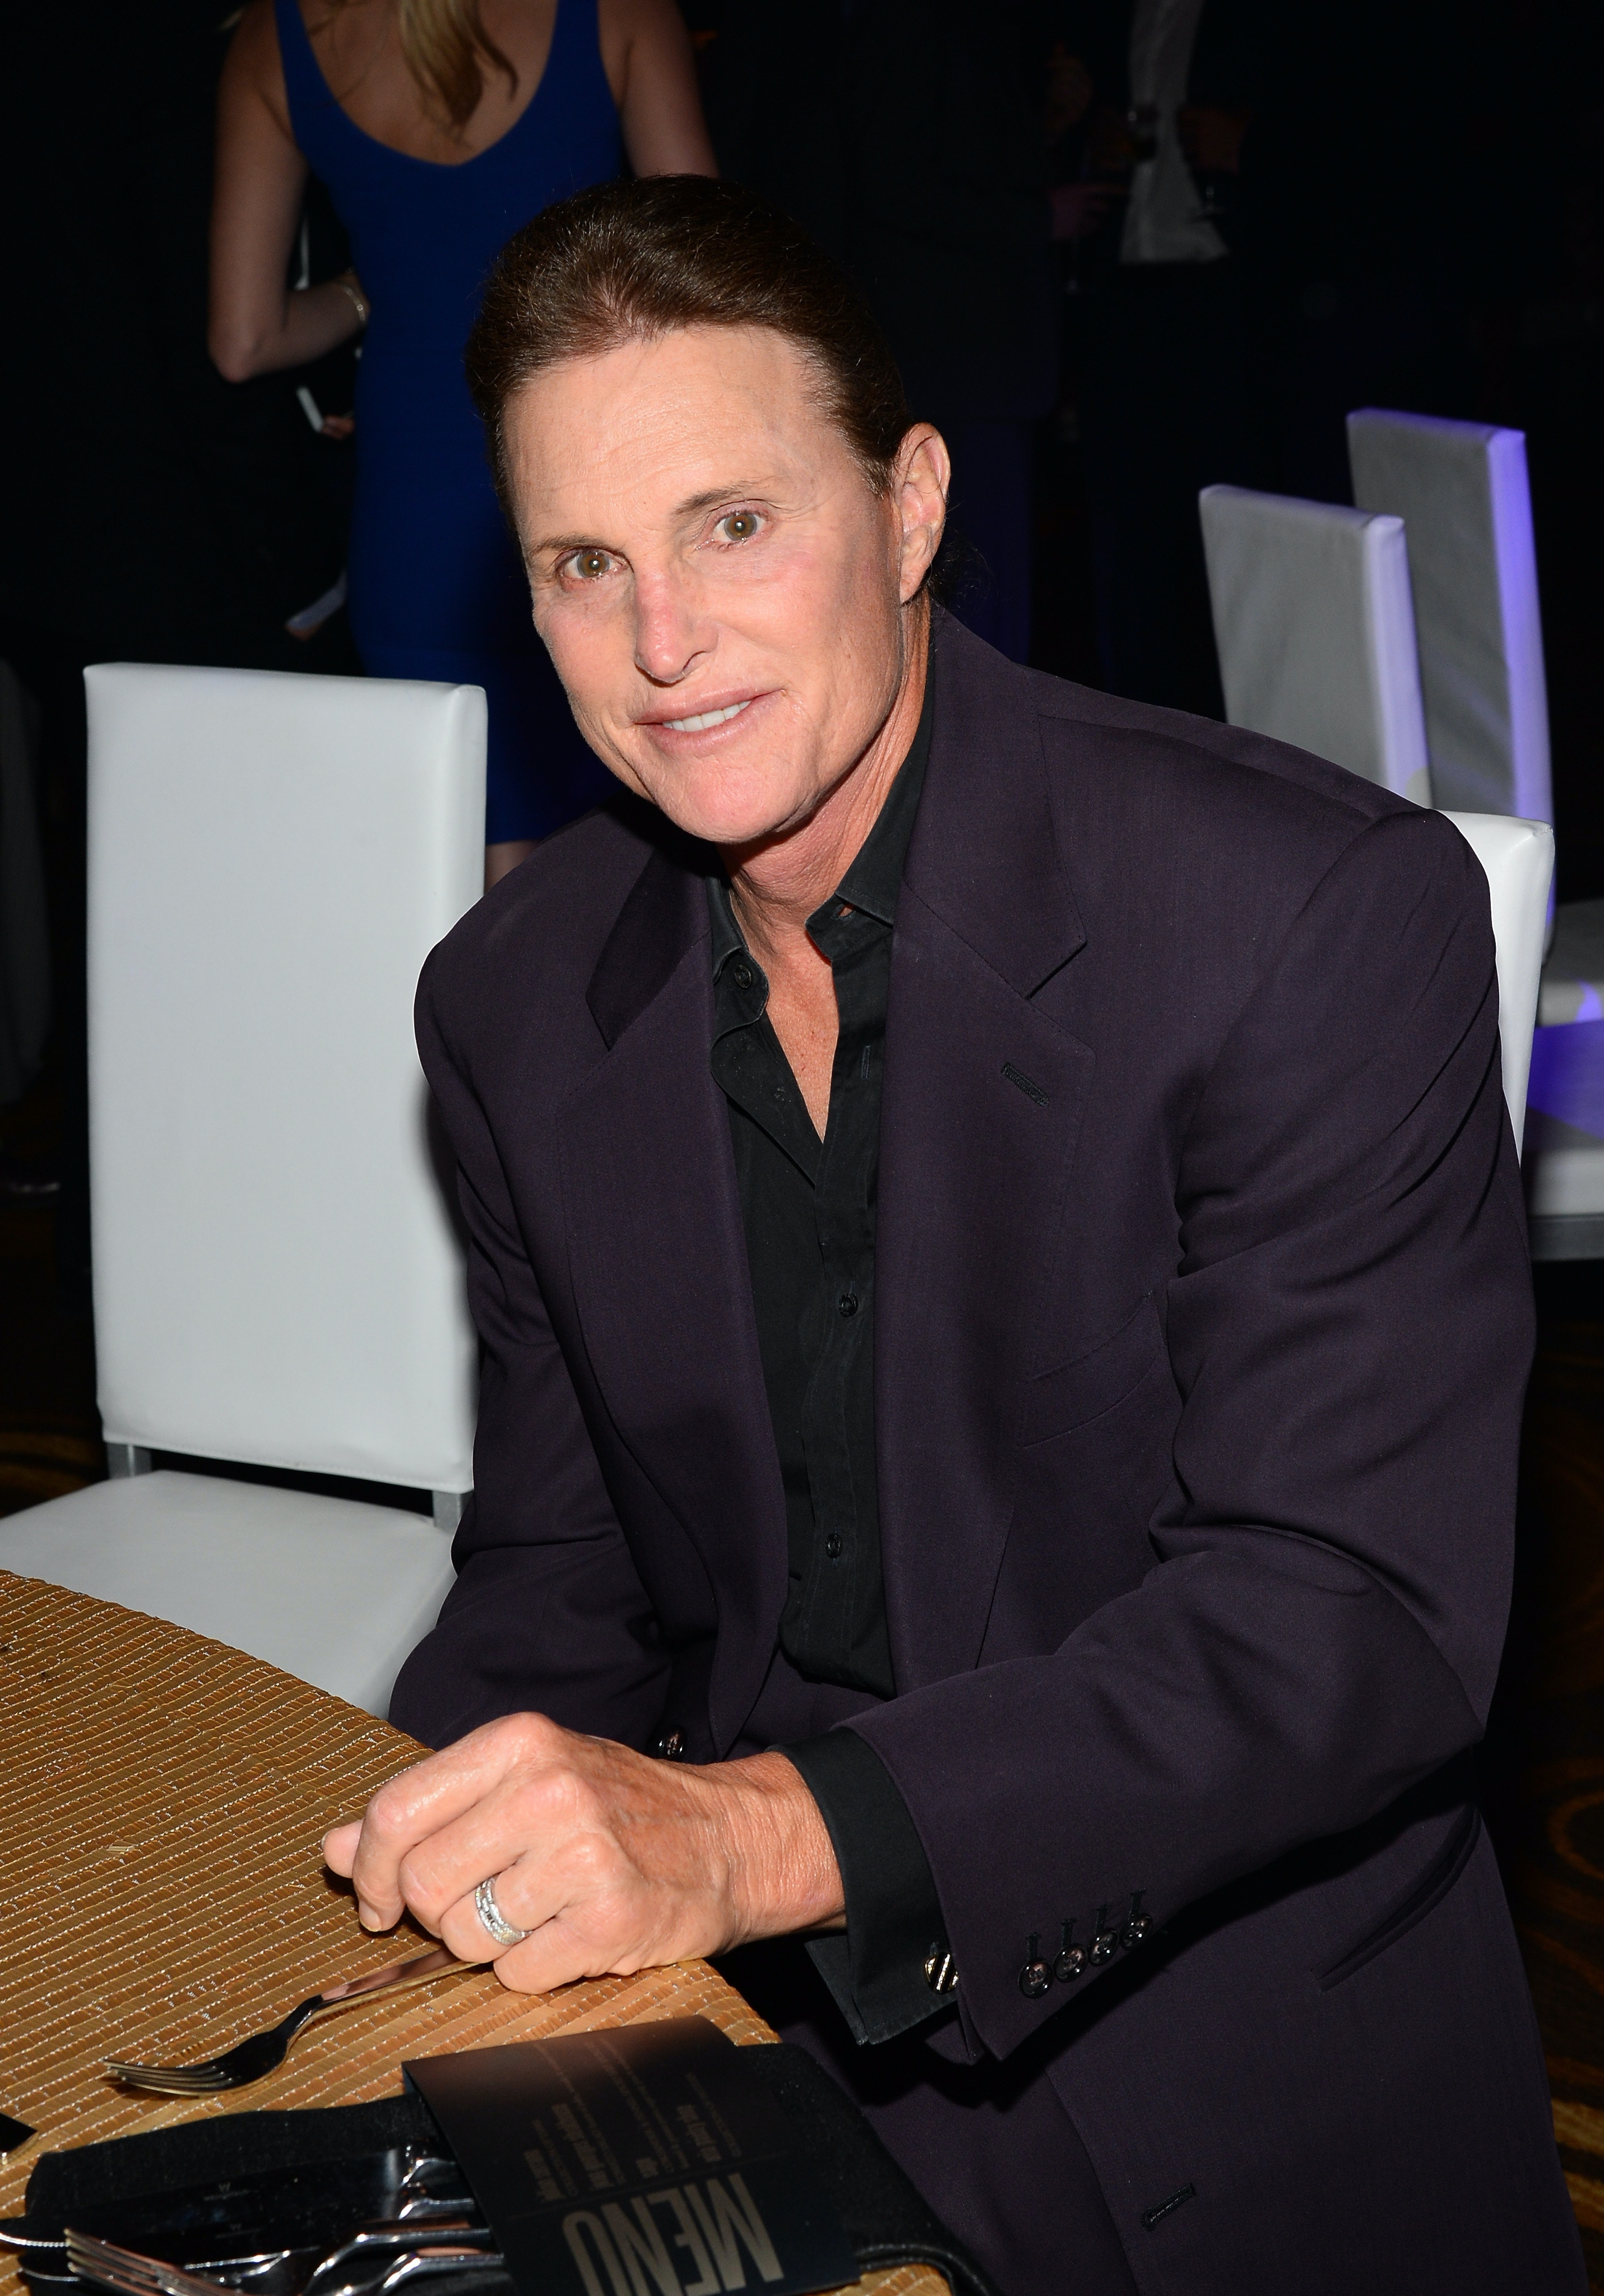 bruce jenner s most inspiring quotes from the diane sawyer interview